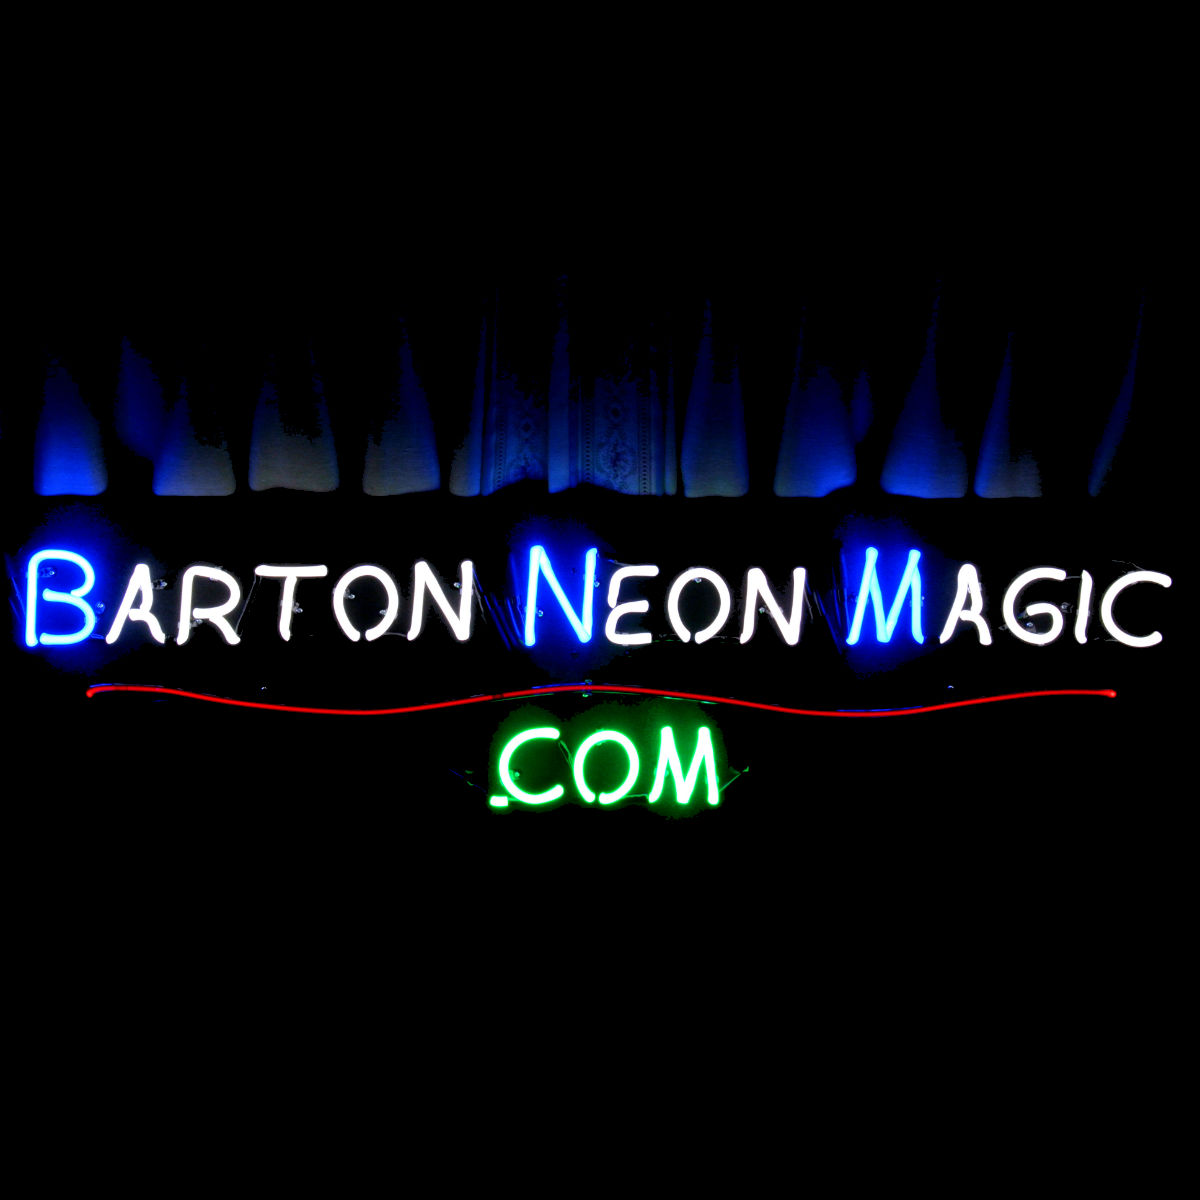 Custom Neon Lighting by John Barton - Famous USA Neon Glass Artist - BartonNeonMagic.com